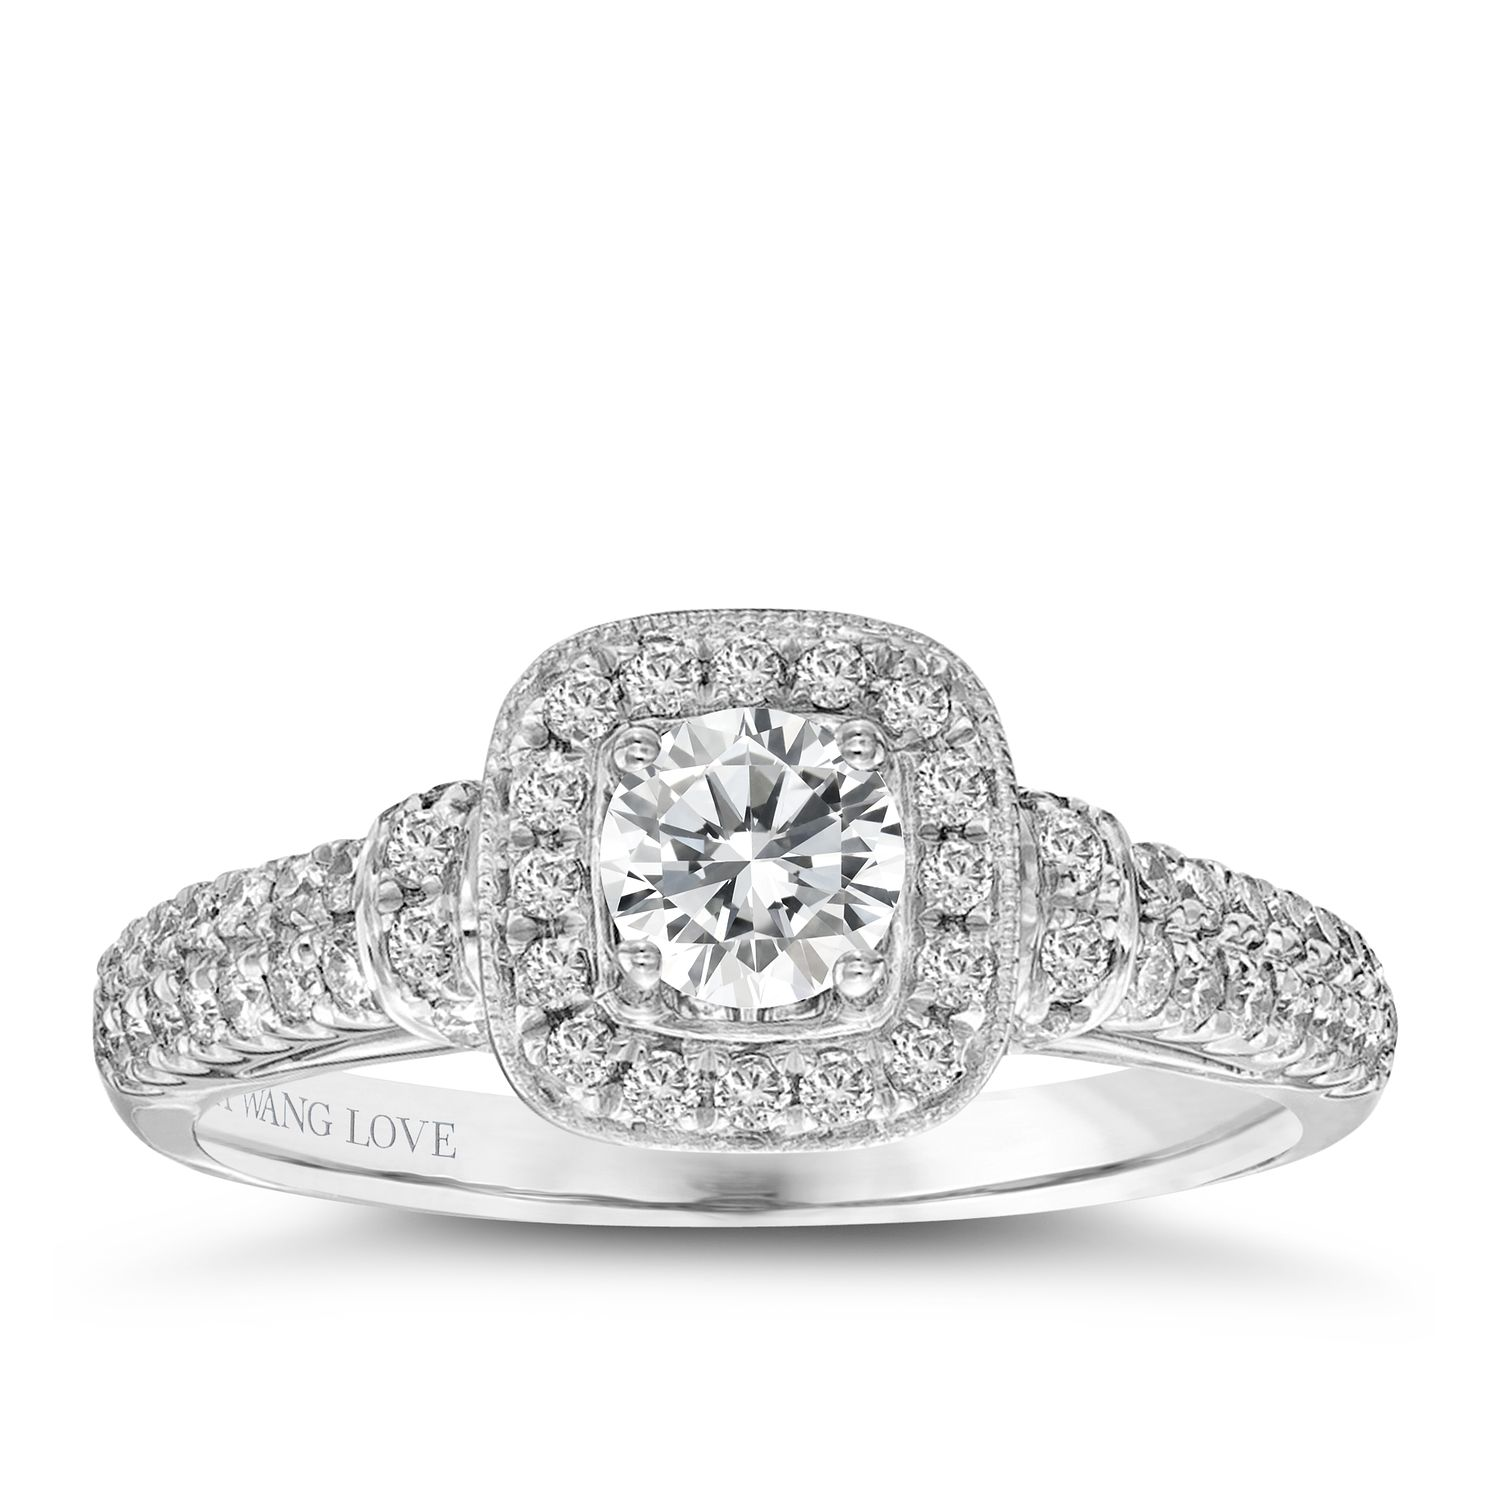 dollars love wang band under ring main glamour diamond engagement gallery vera weddings twisted rings